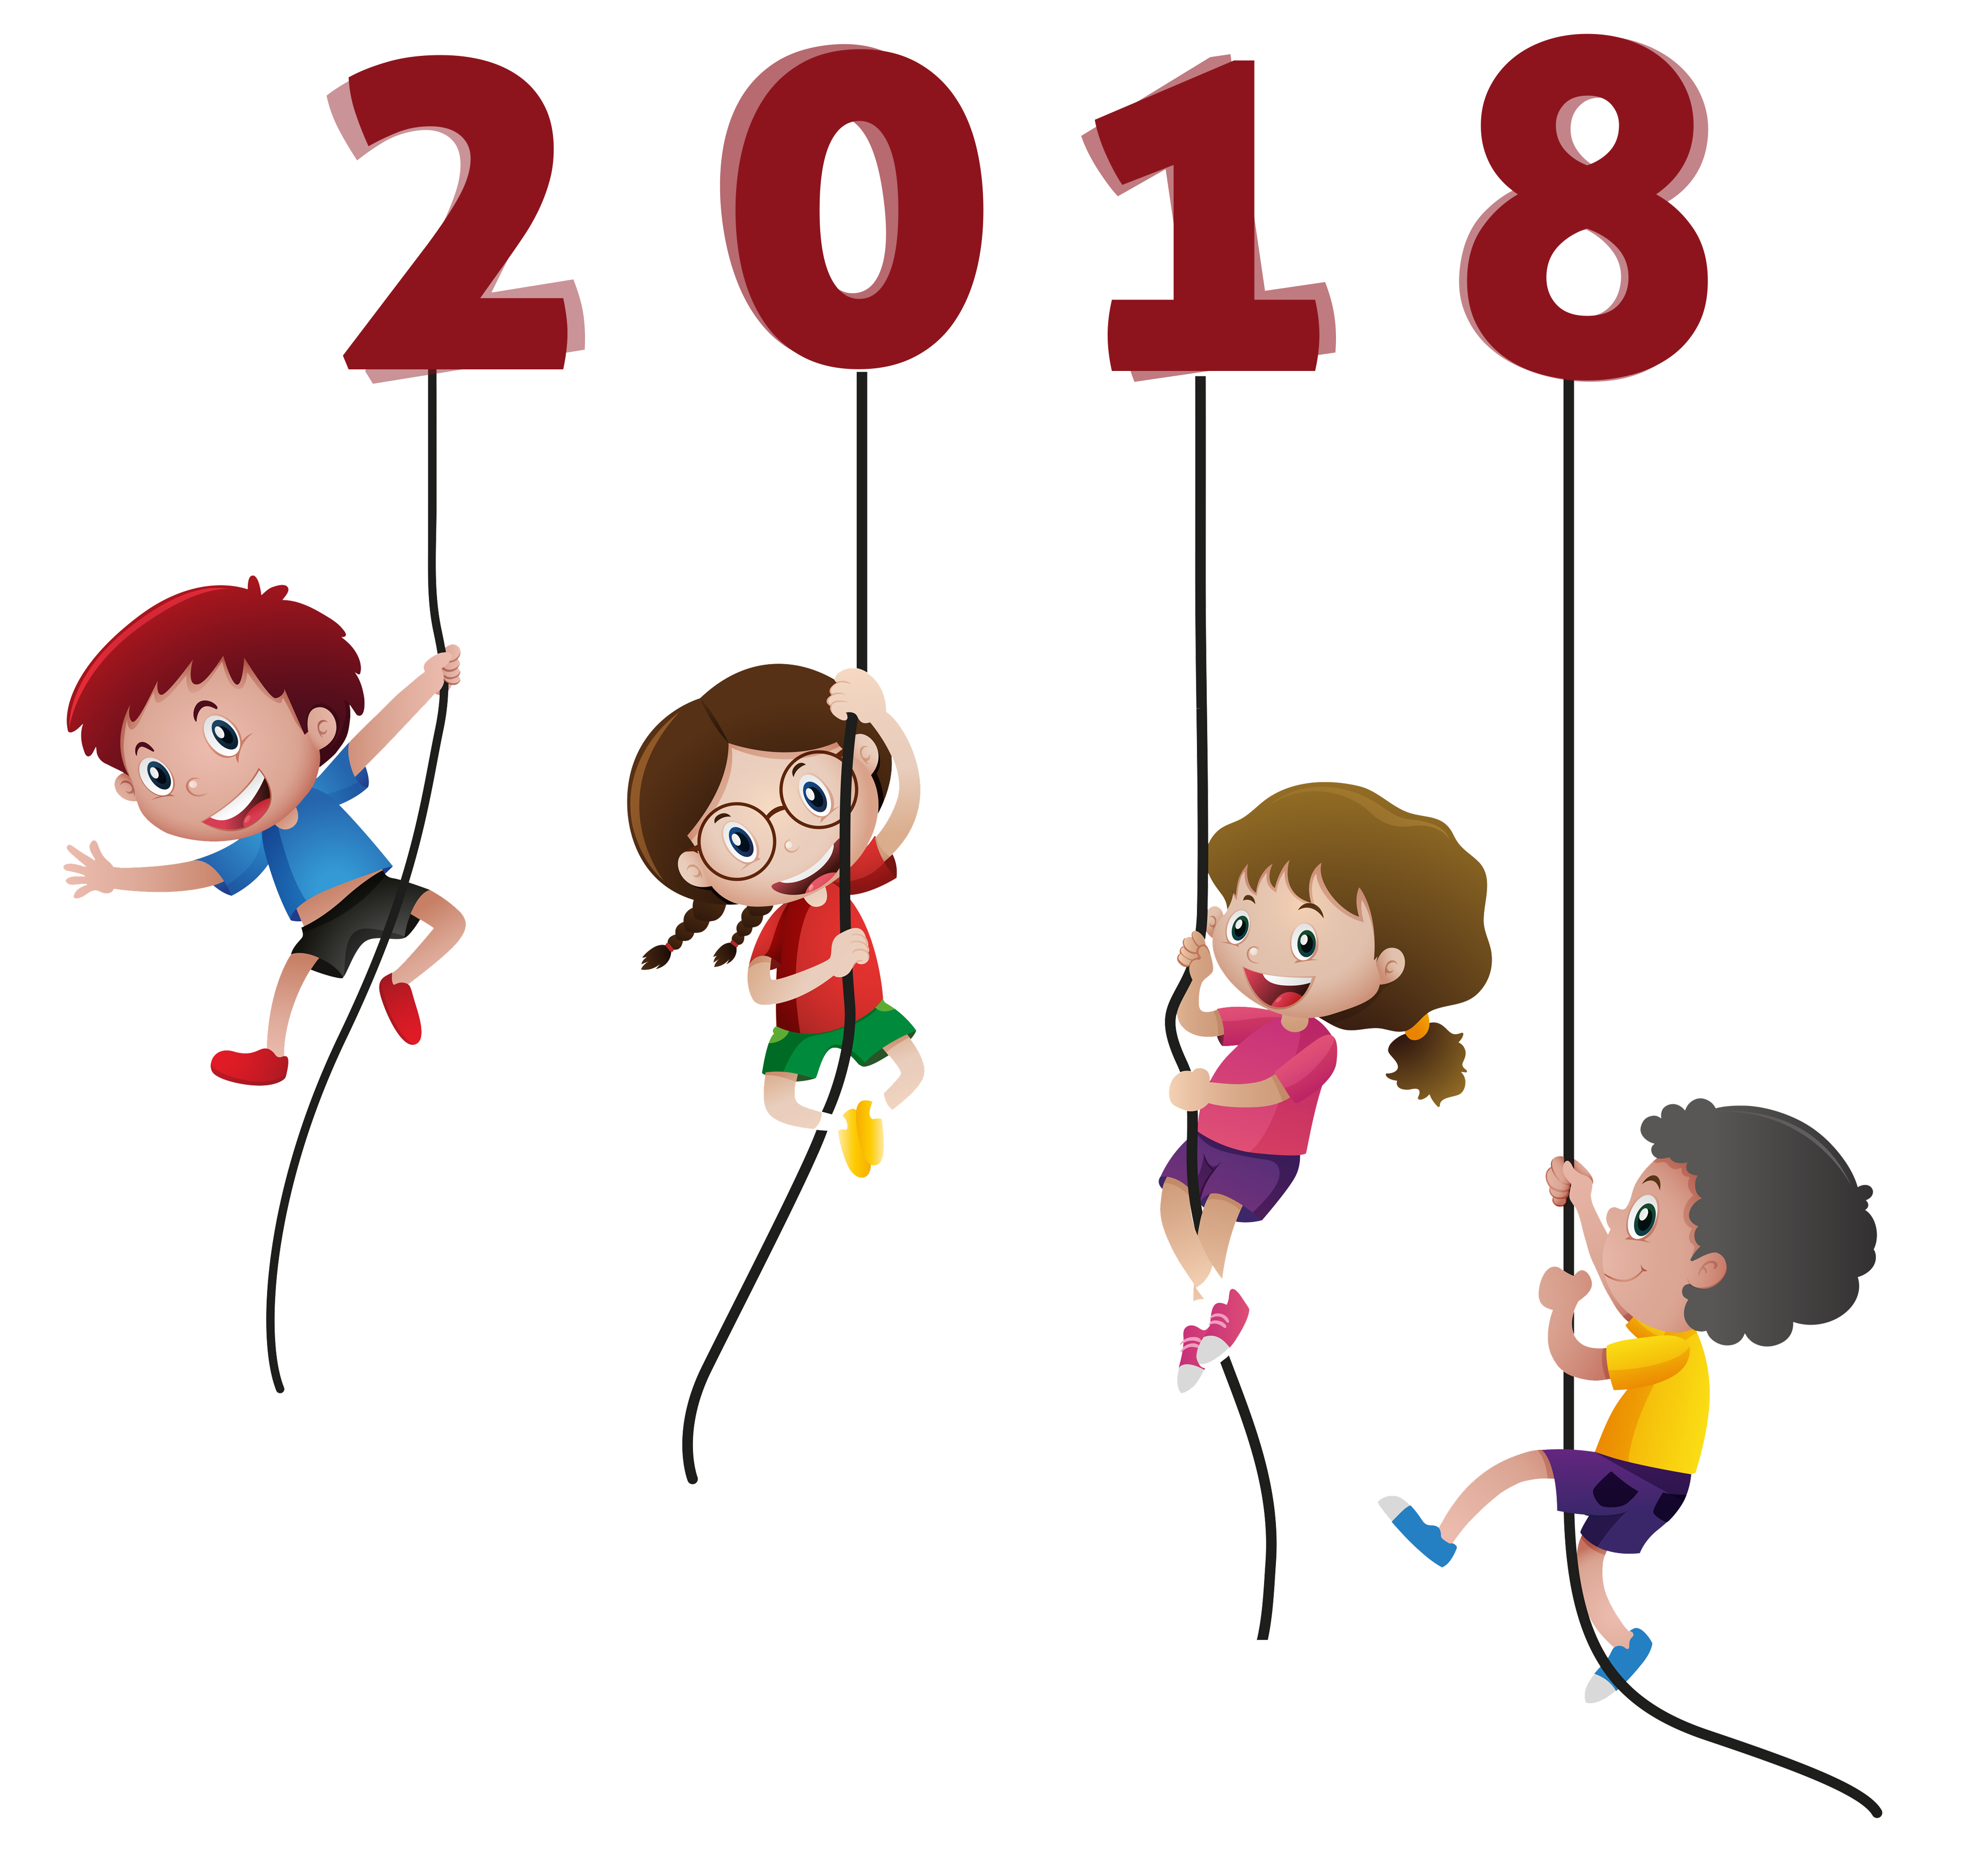 Happy New Year 2018 Kids Funny without background - Coloring Point . hdclipartall.com svg  freeuse